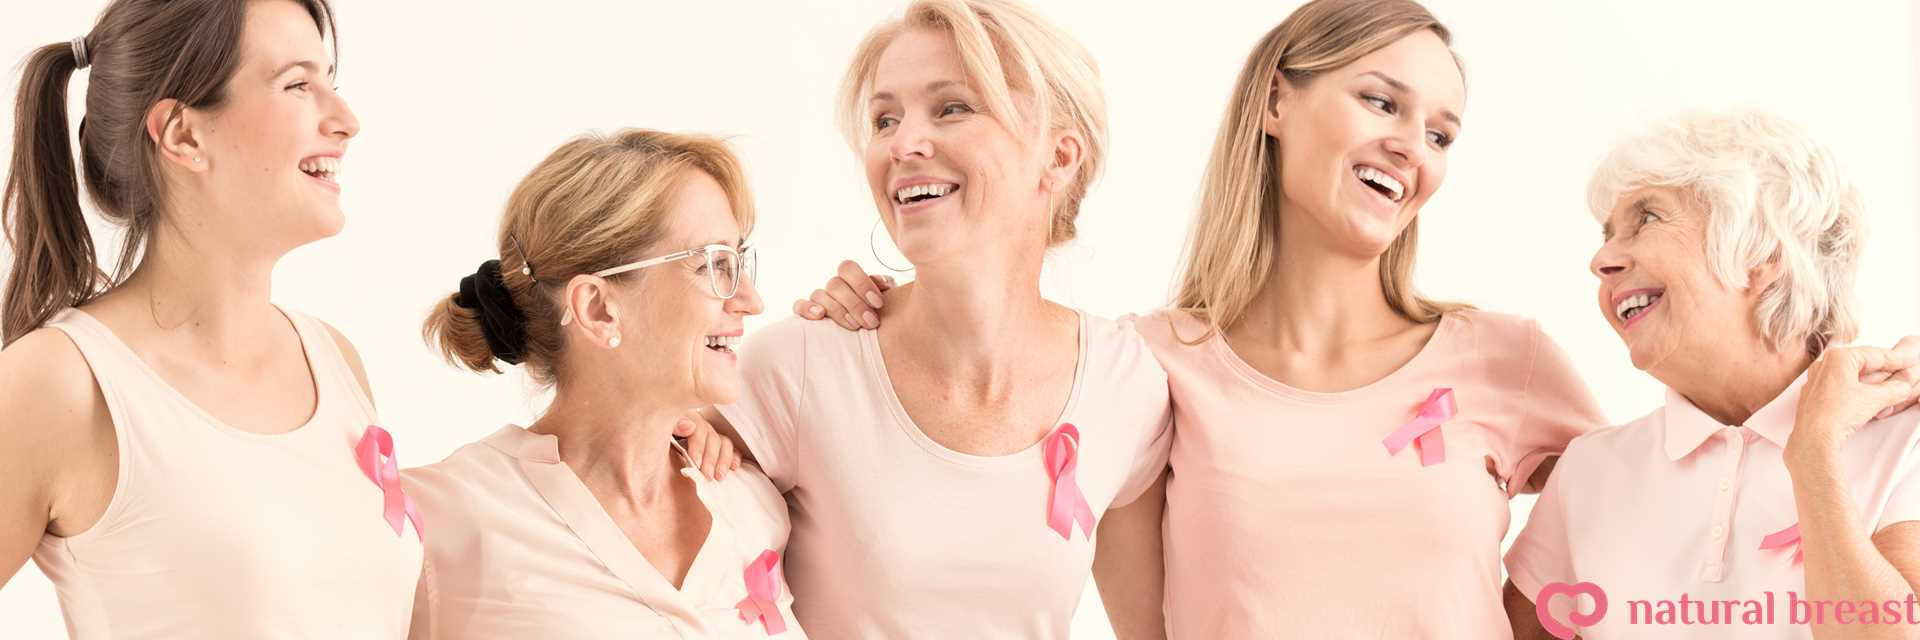 Prosthetic breast and prosthetic nipples for breast cancer patients.